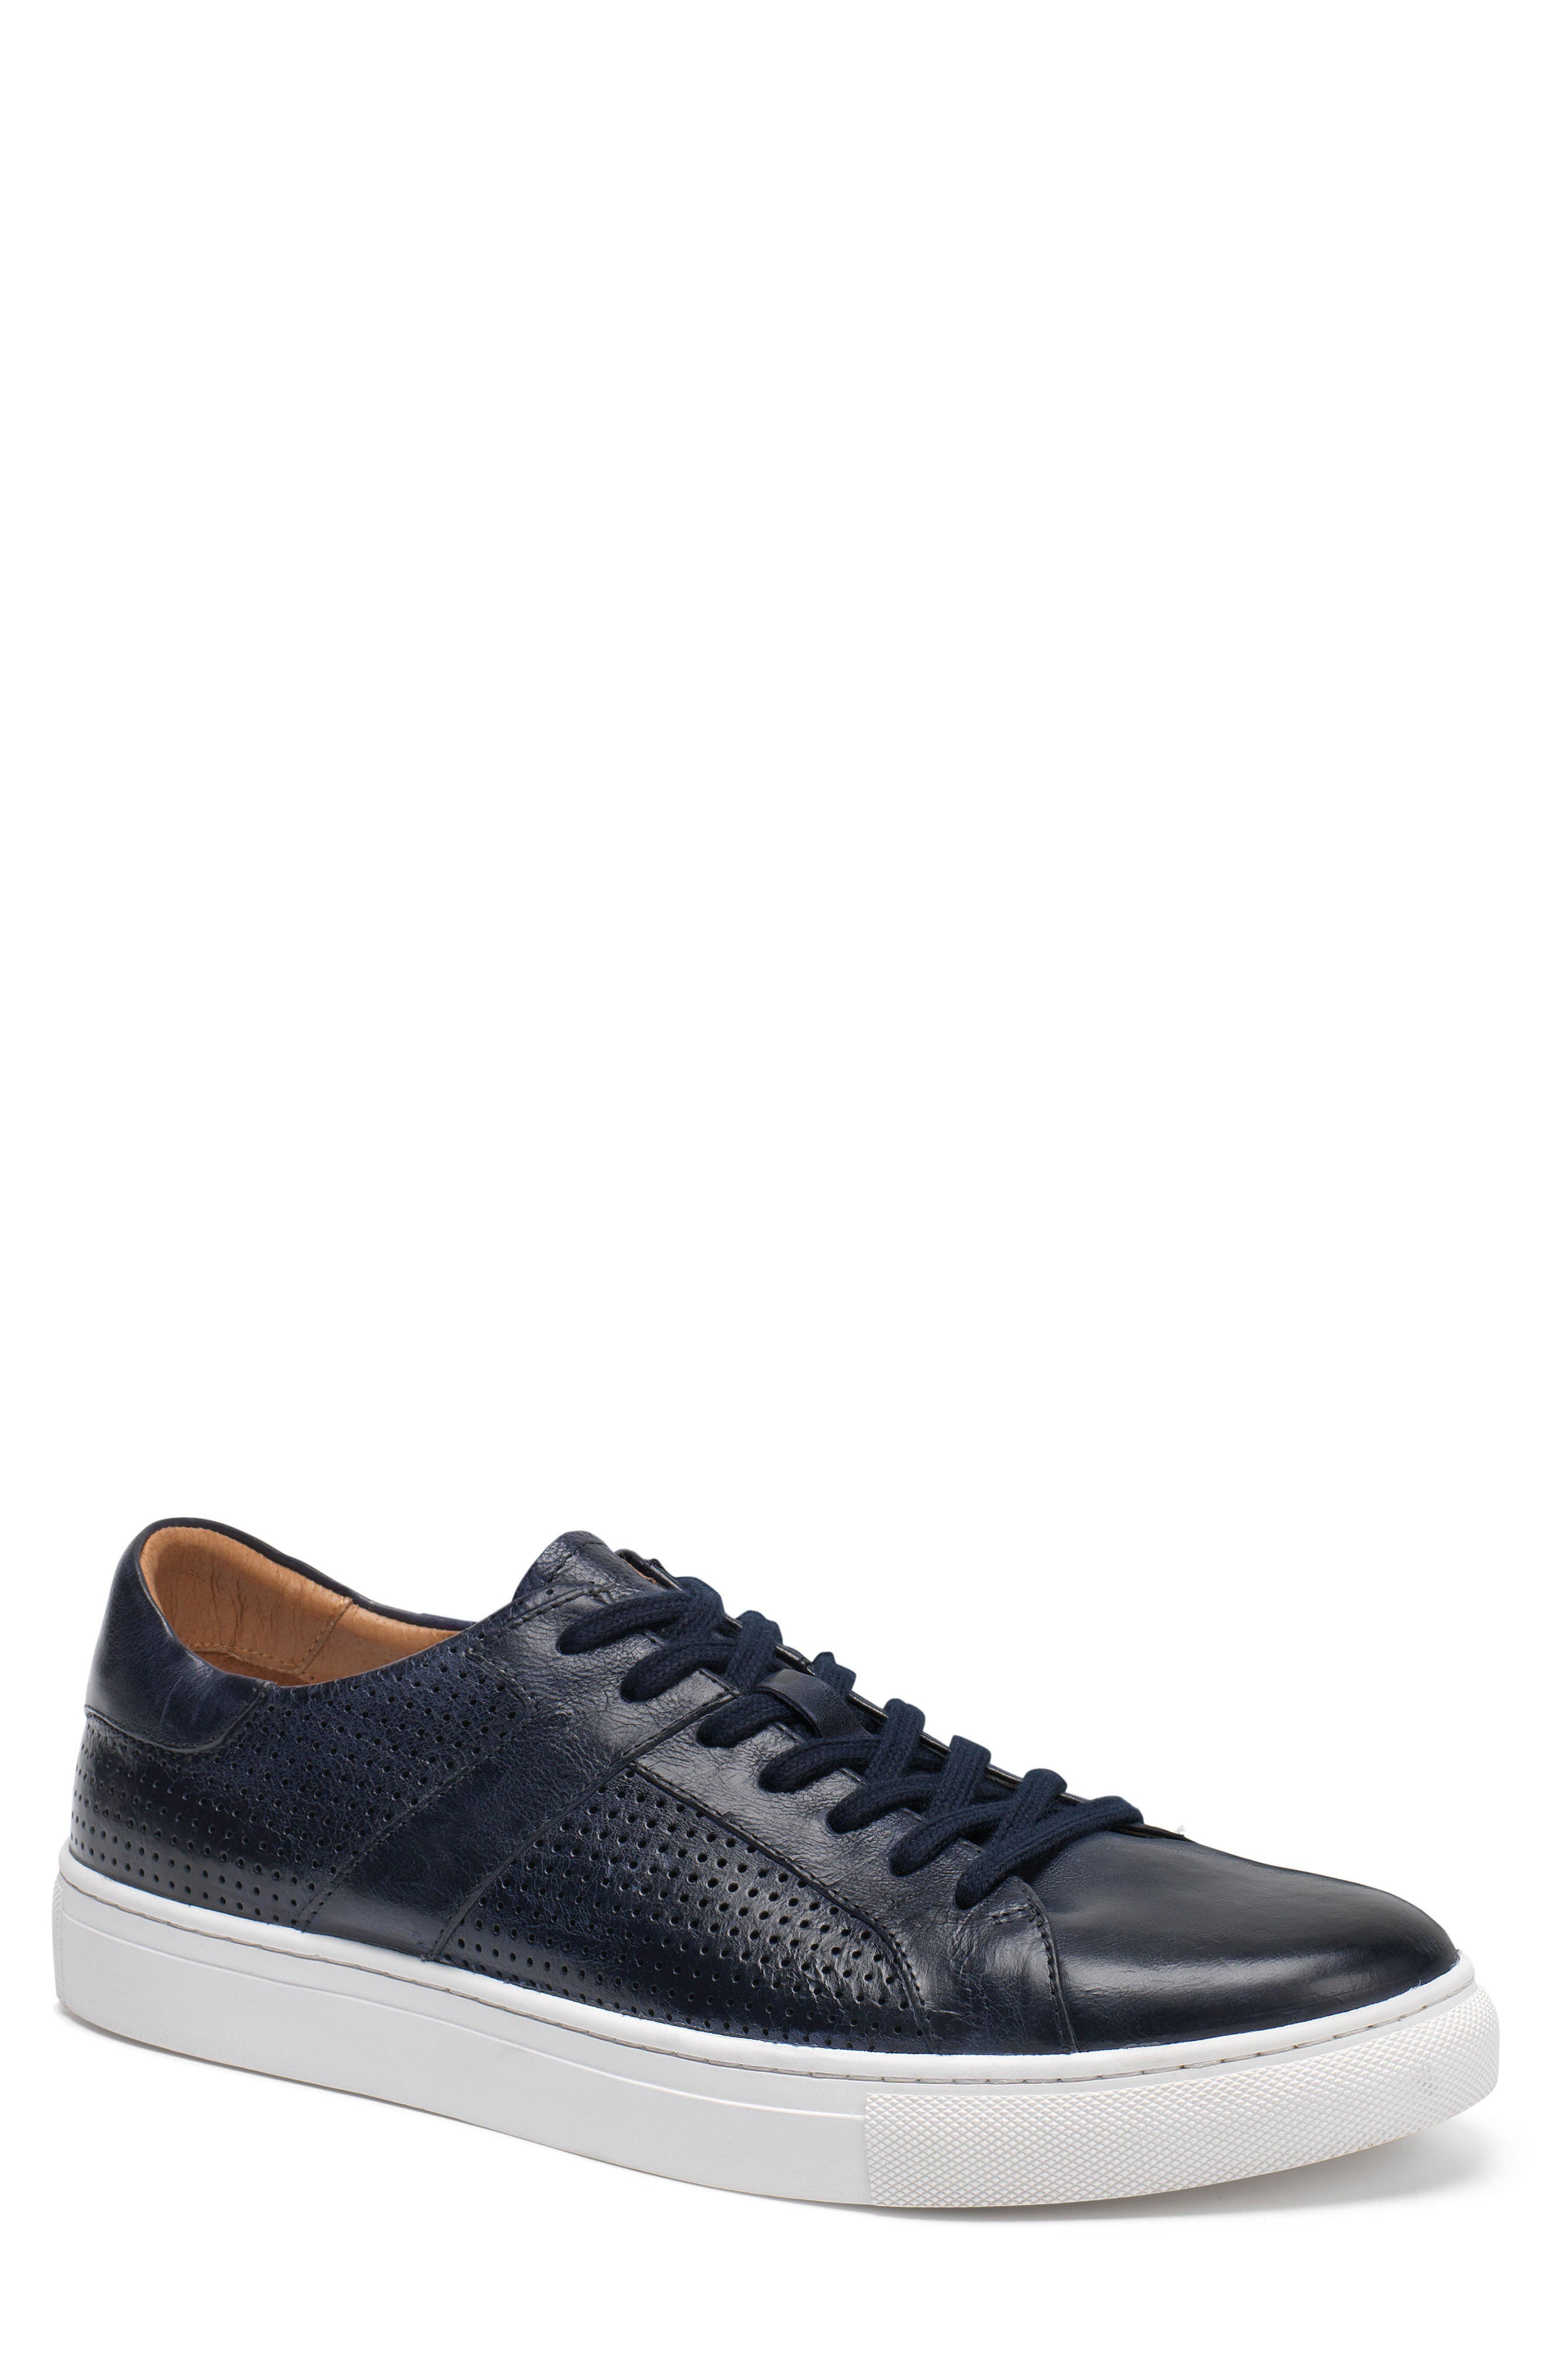 Aaron Sneaker,                         Main,                         color, Navy Leather